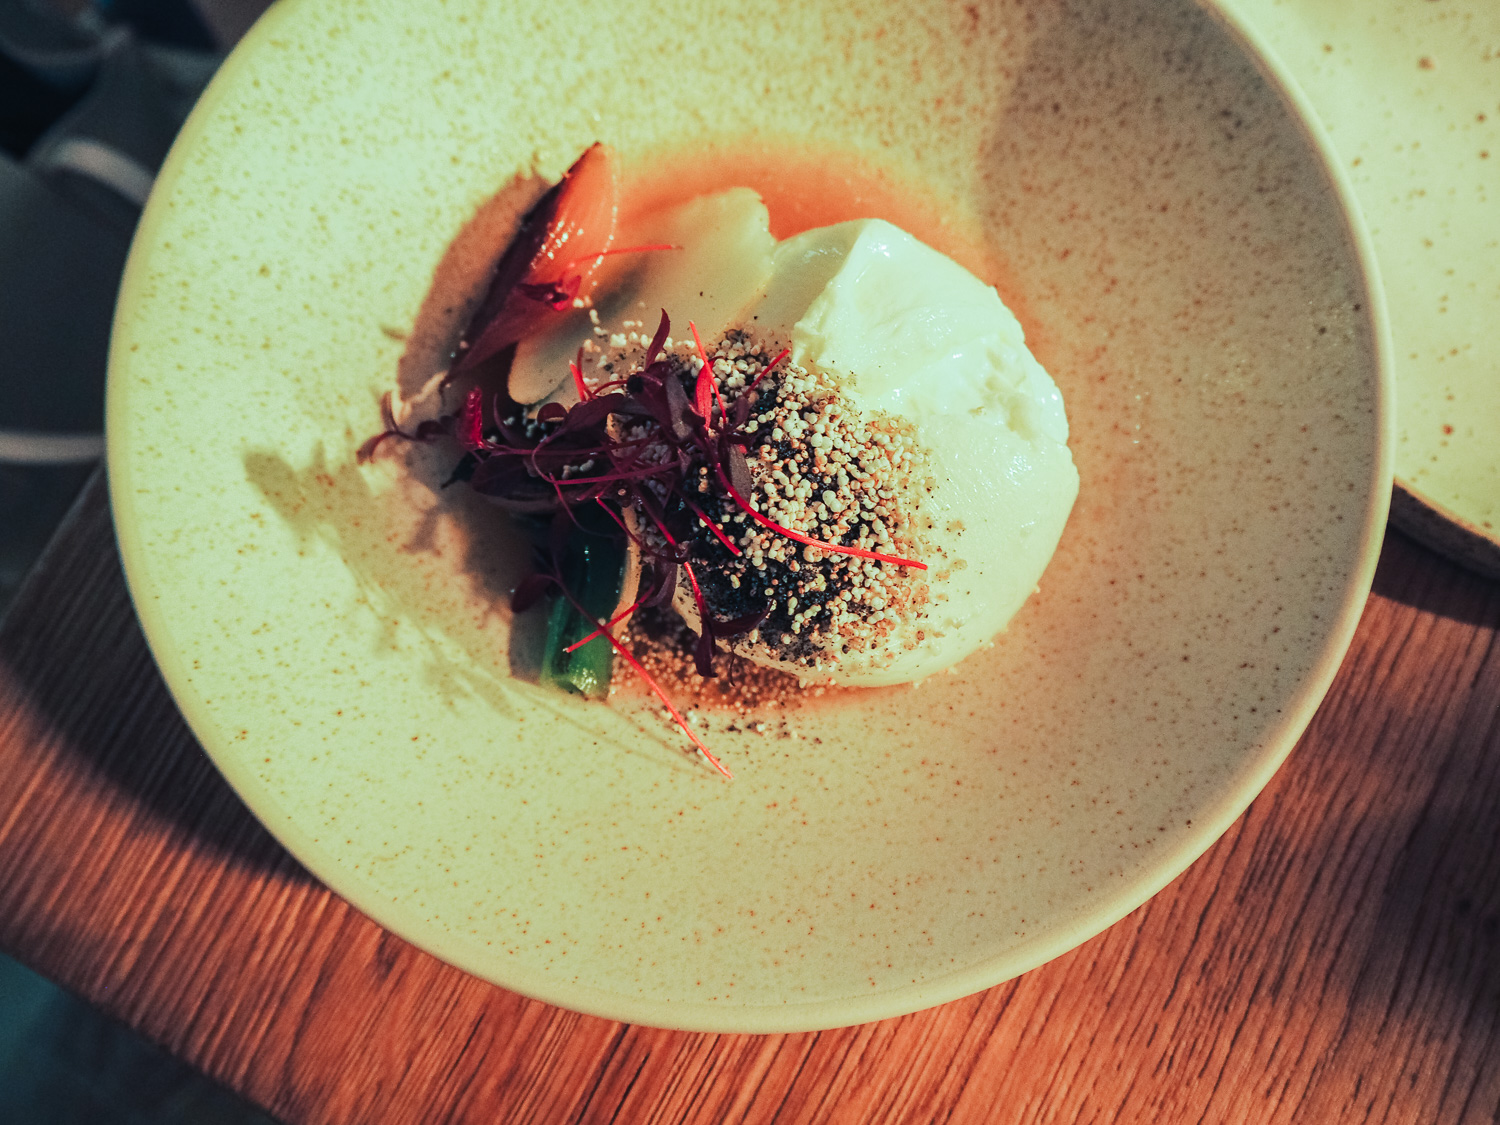 La Latteria burrata with Roscoff onions, Comace pears and amaranth at Milk Beach restaurant in Queen's Park, London